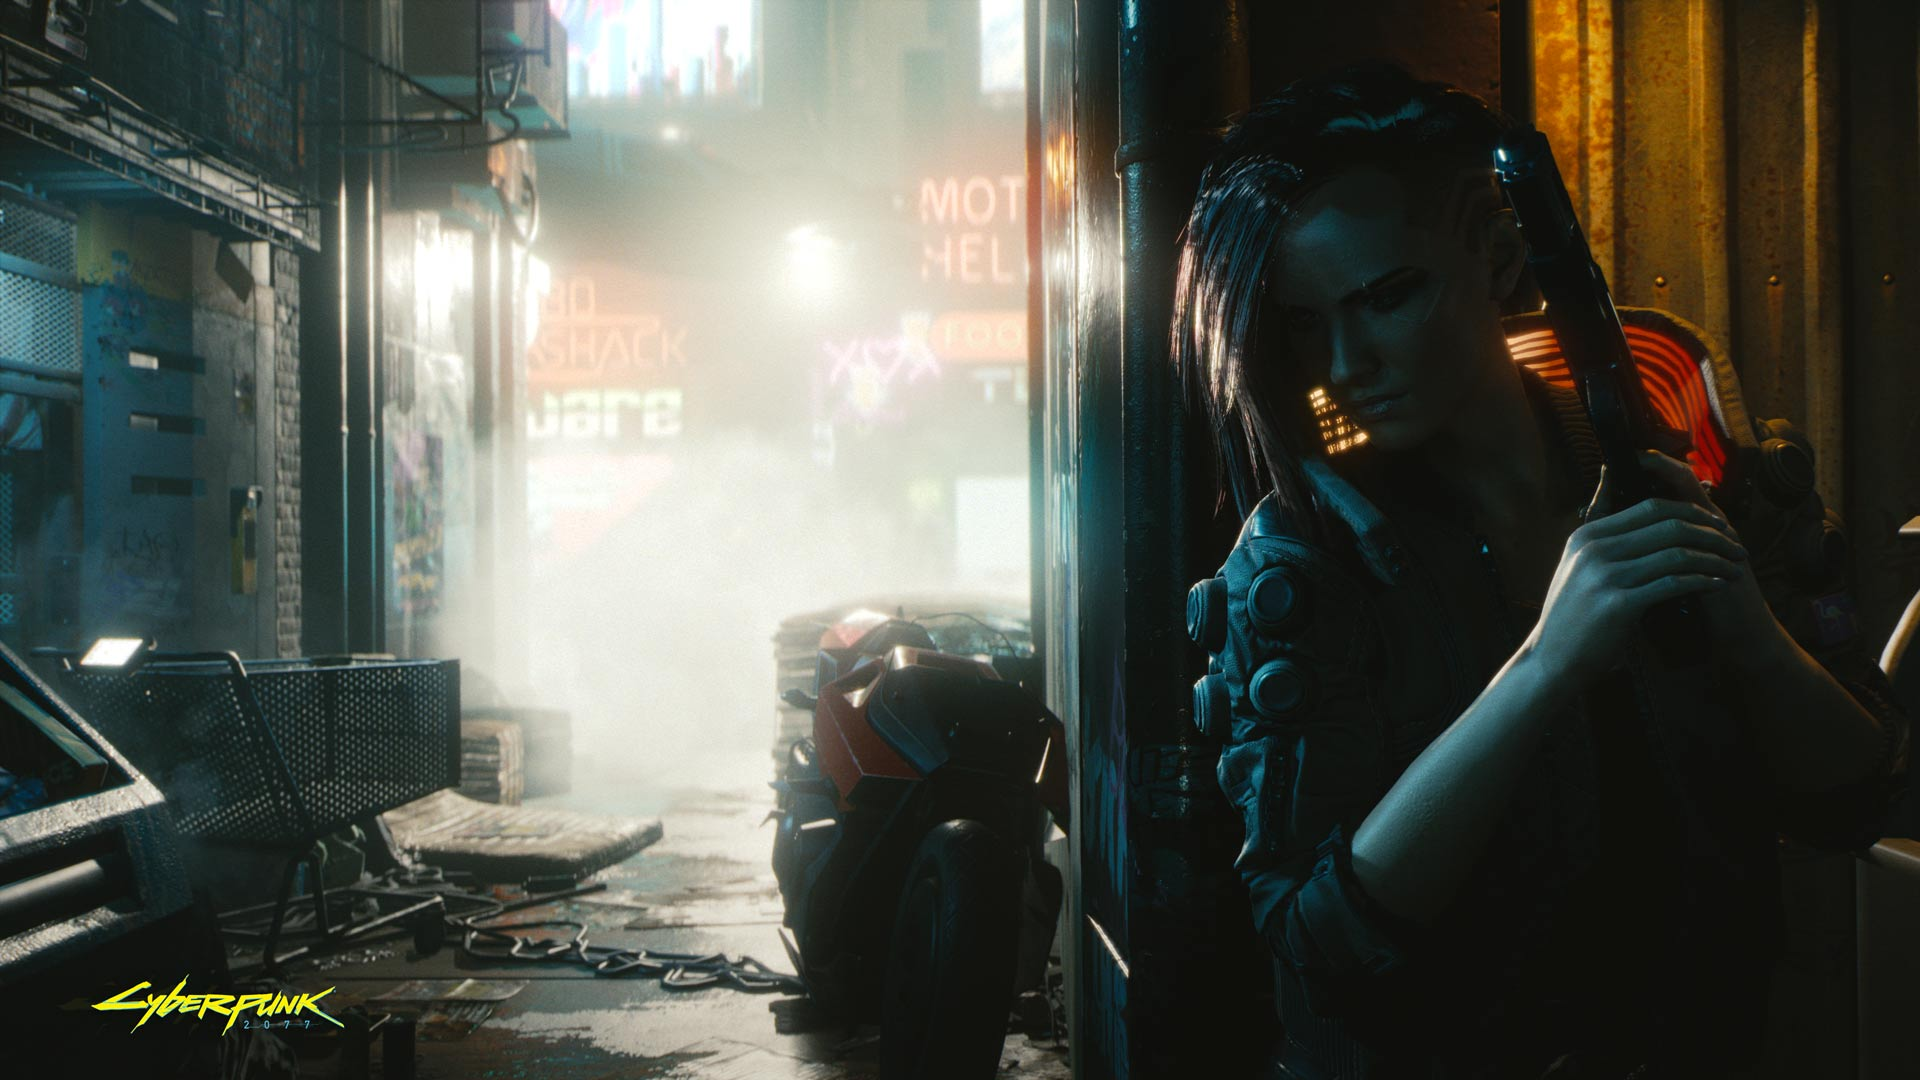 Cyberpunk 2077 release date all the latest details on